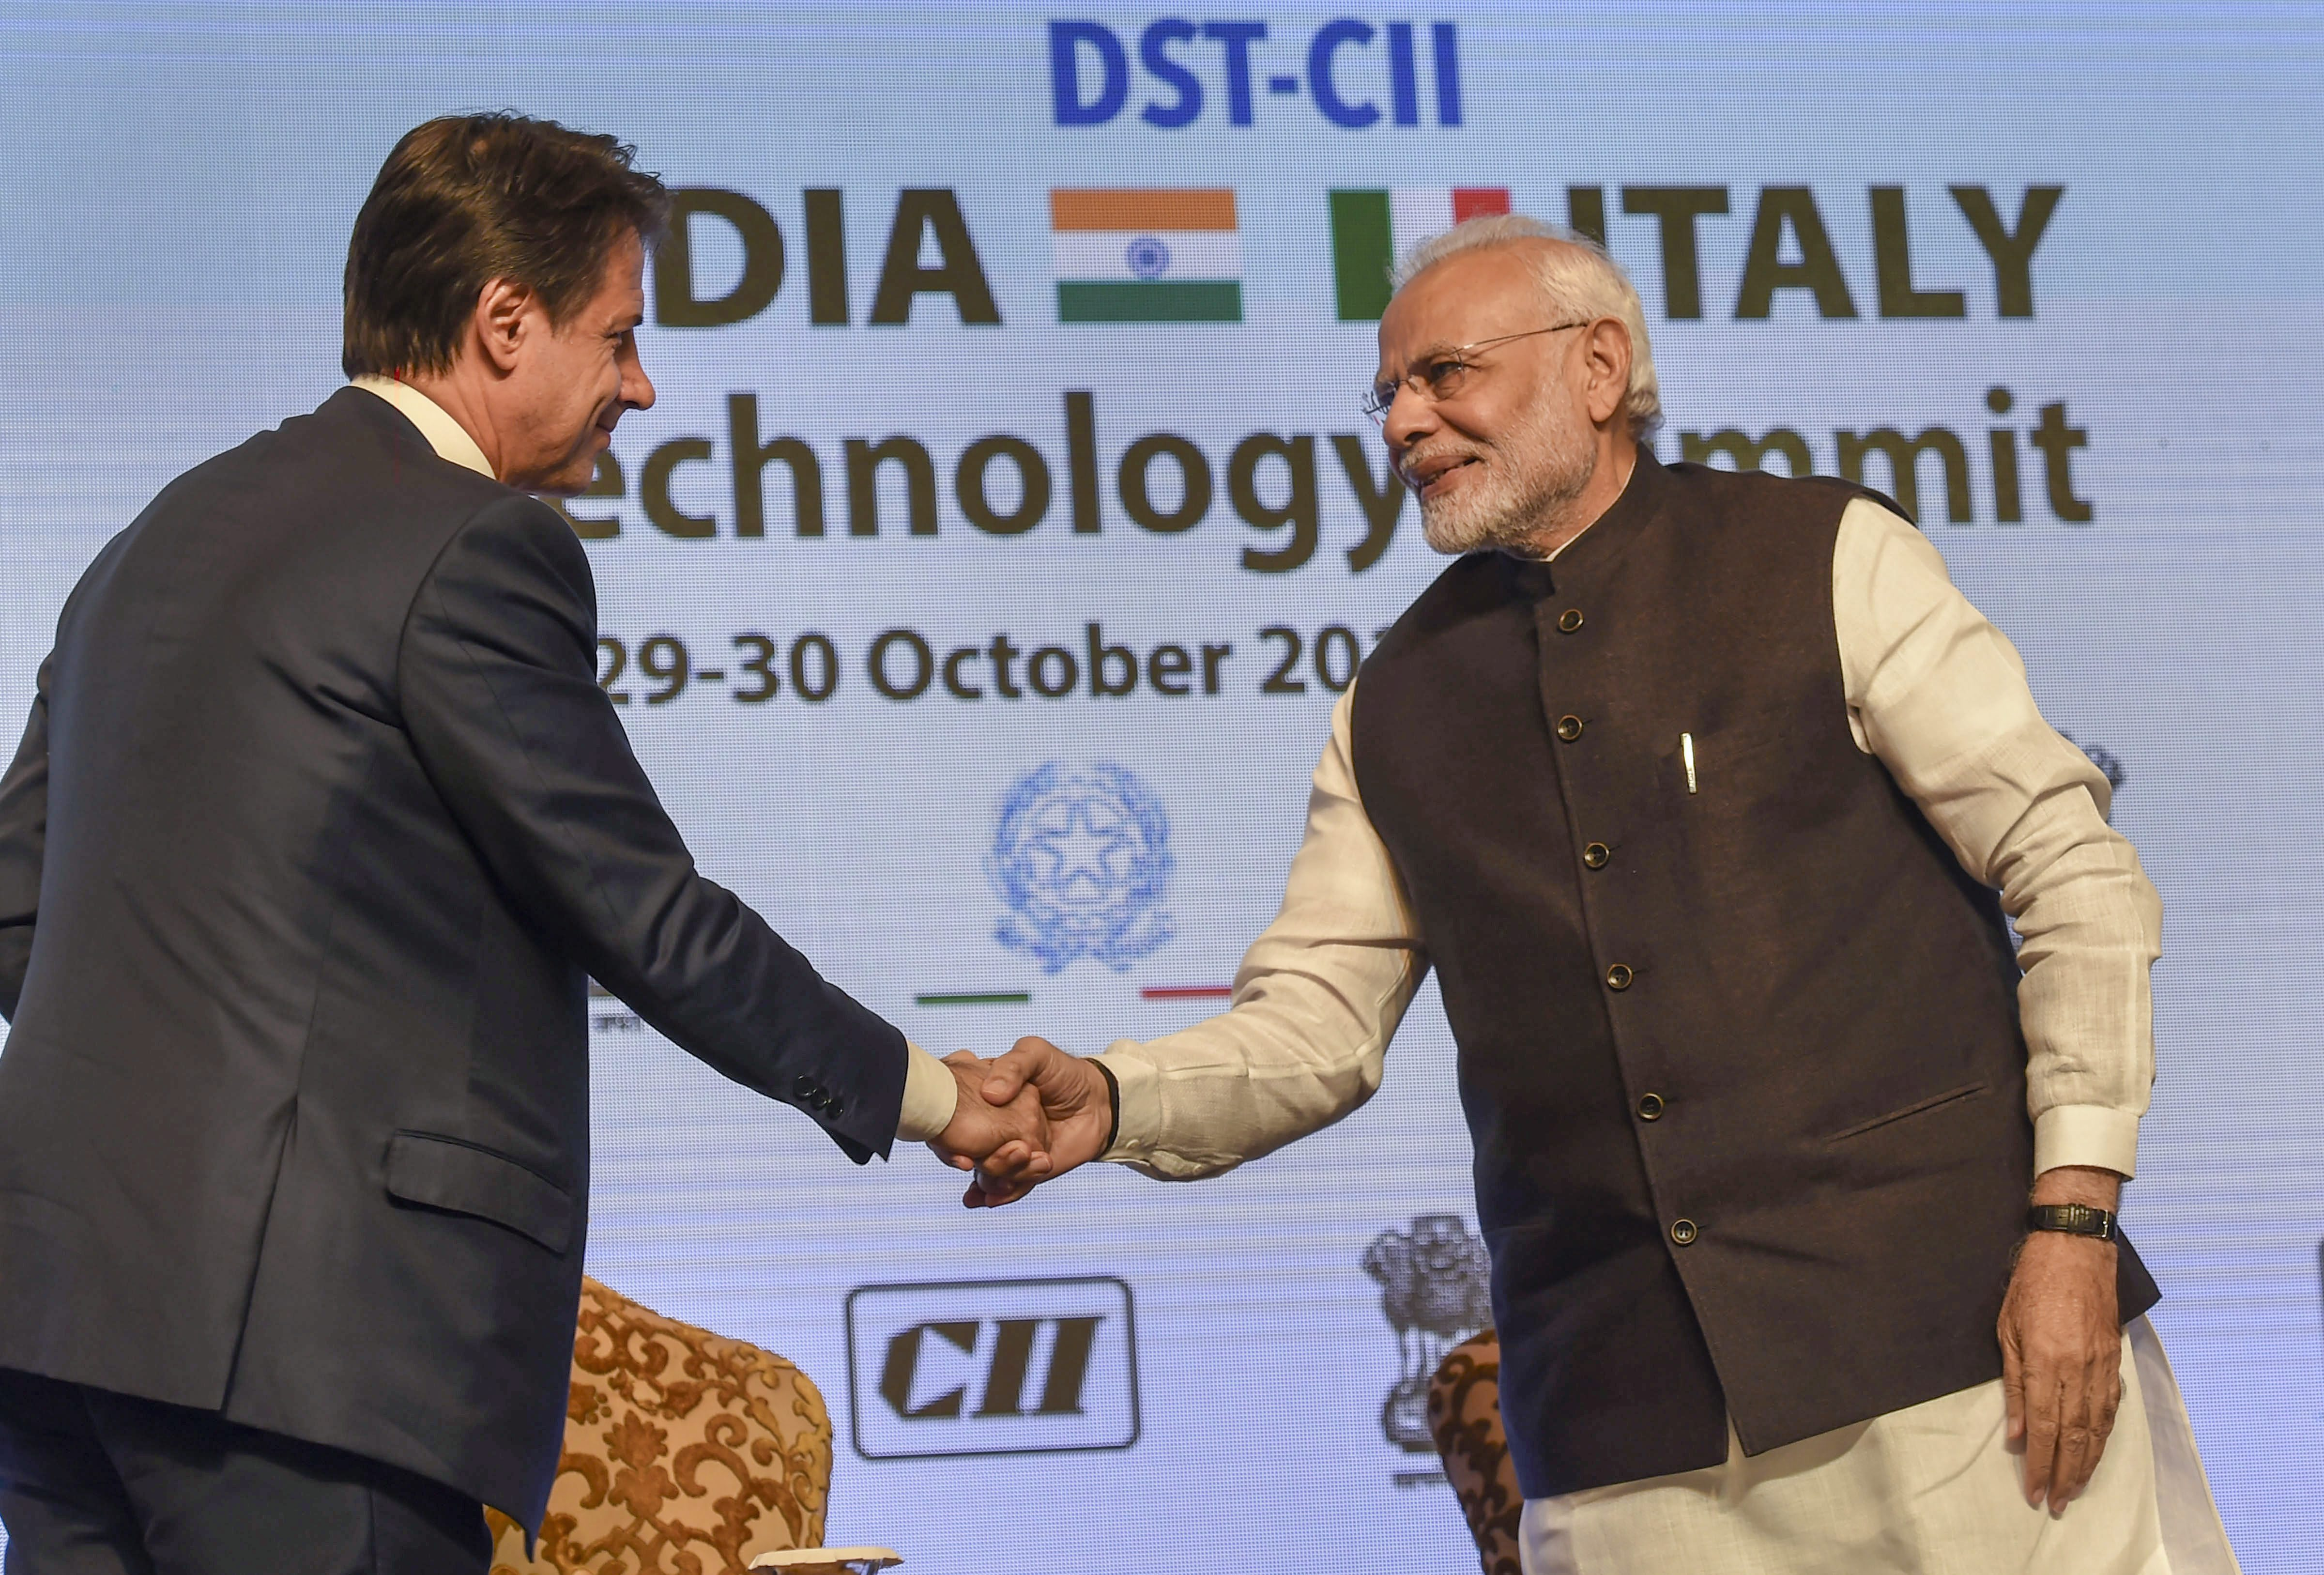 Prime Minister Narendra Modi shakes hands with Italian Prime Minister Giuseppe Conte during the India-Italy Technology Summit, in New Delhi - PTI